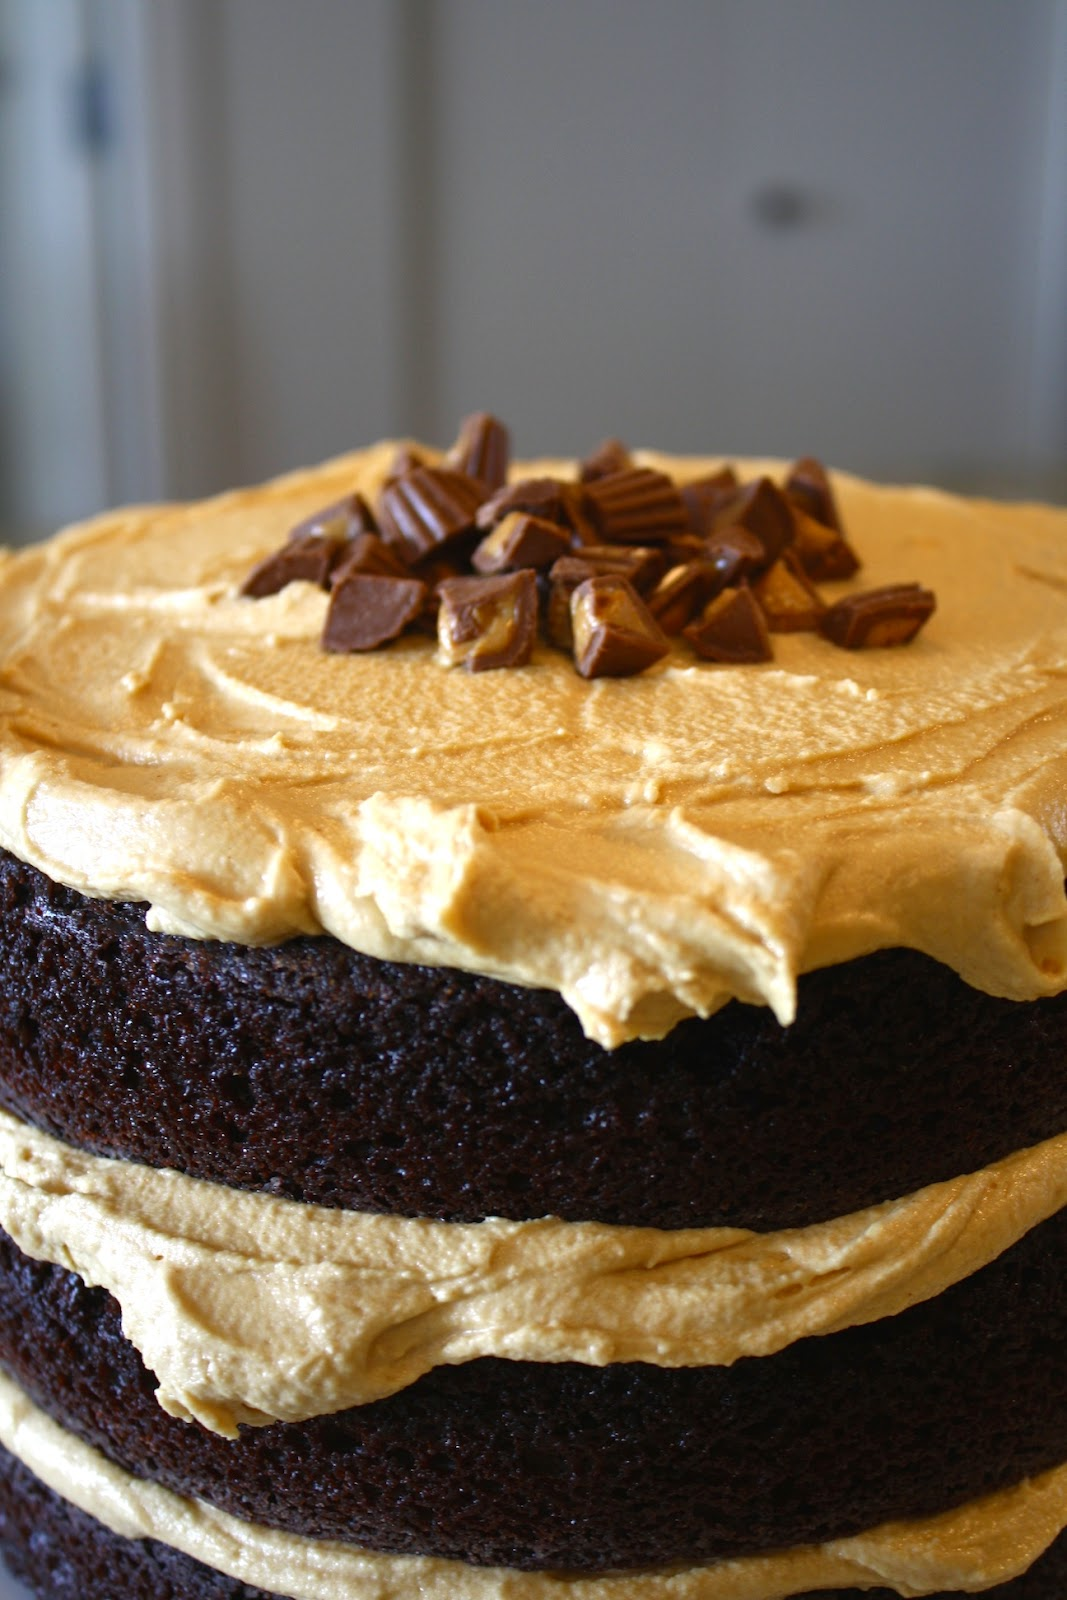 Reese's Peanut Butter Cake - Rich and delicious chocolate cake with a whipped peanut butter frosting and mini Reese's peanut butter cups. | livforcake.com